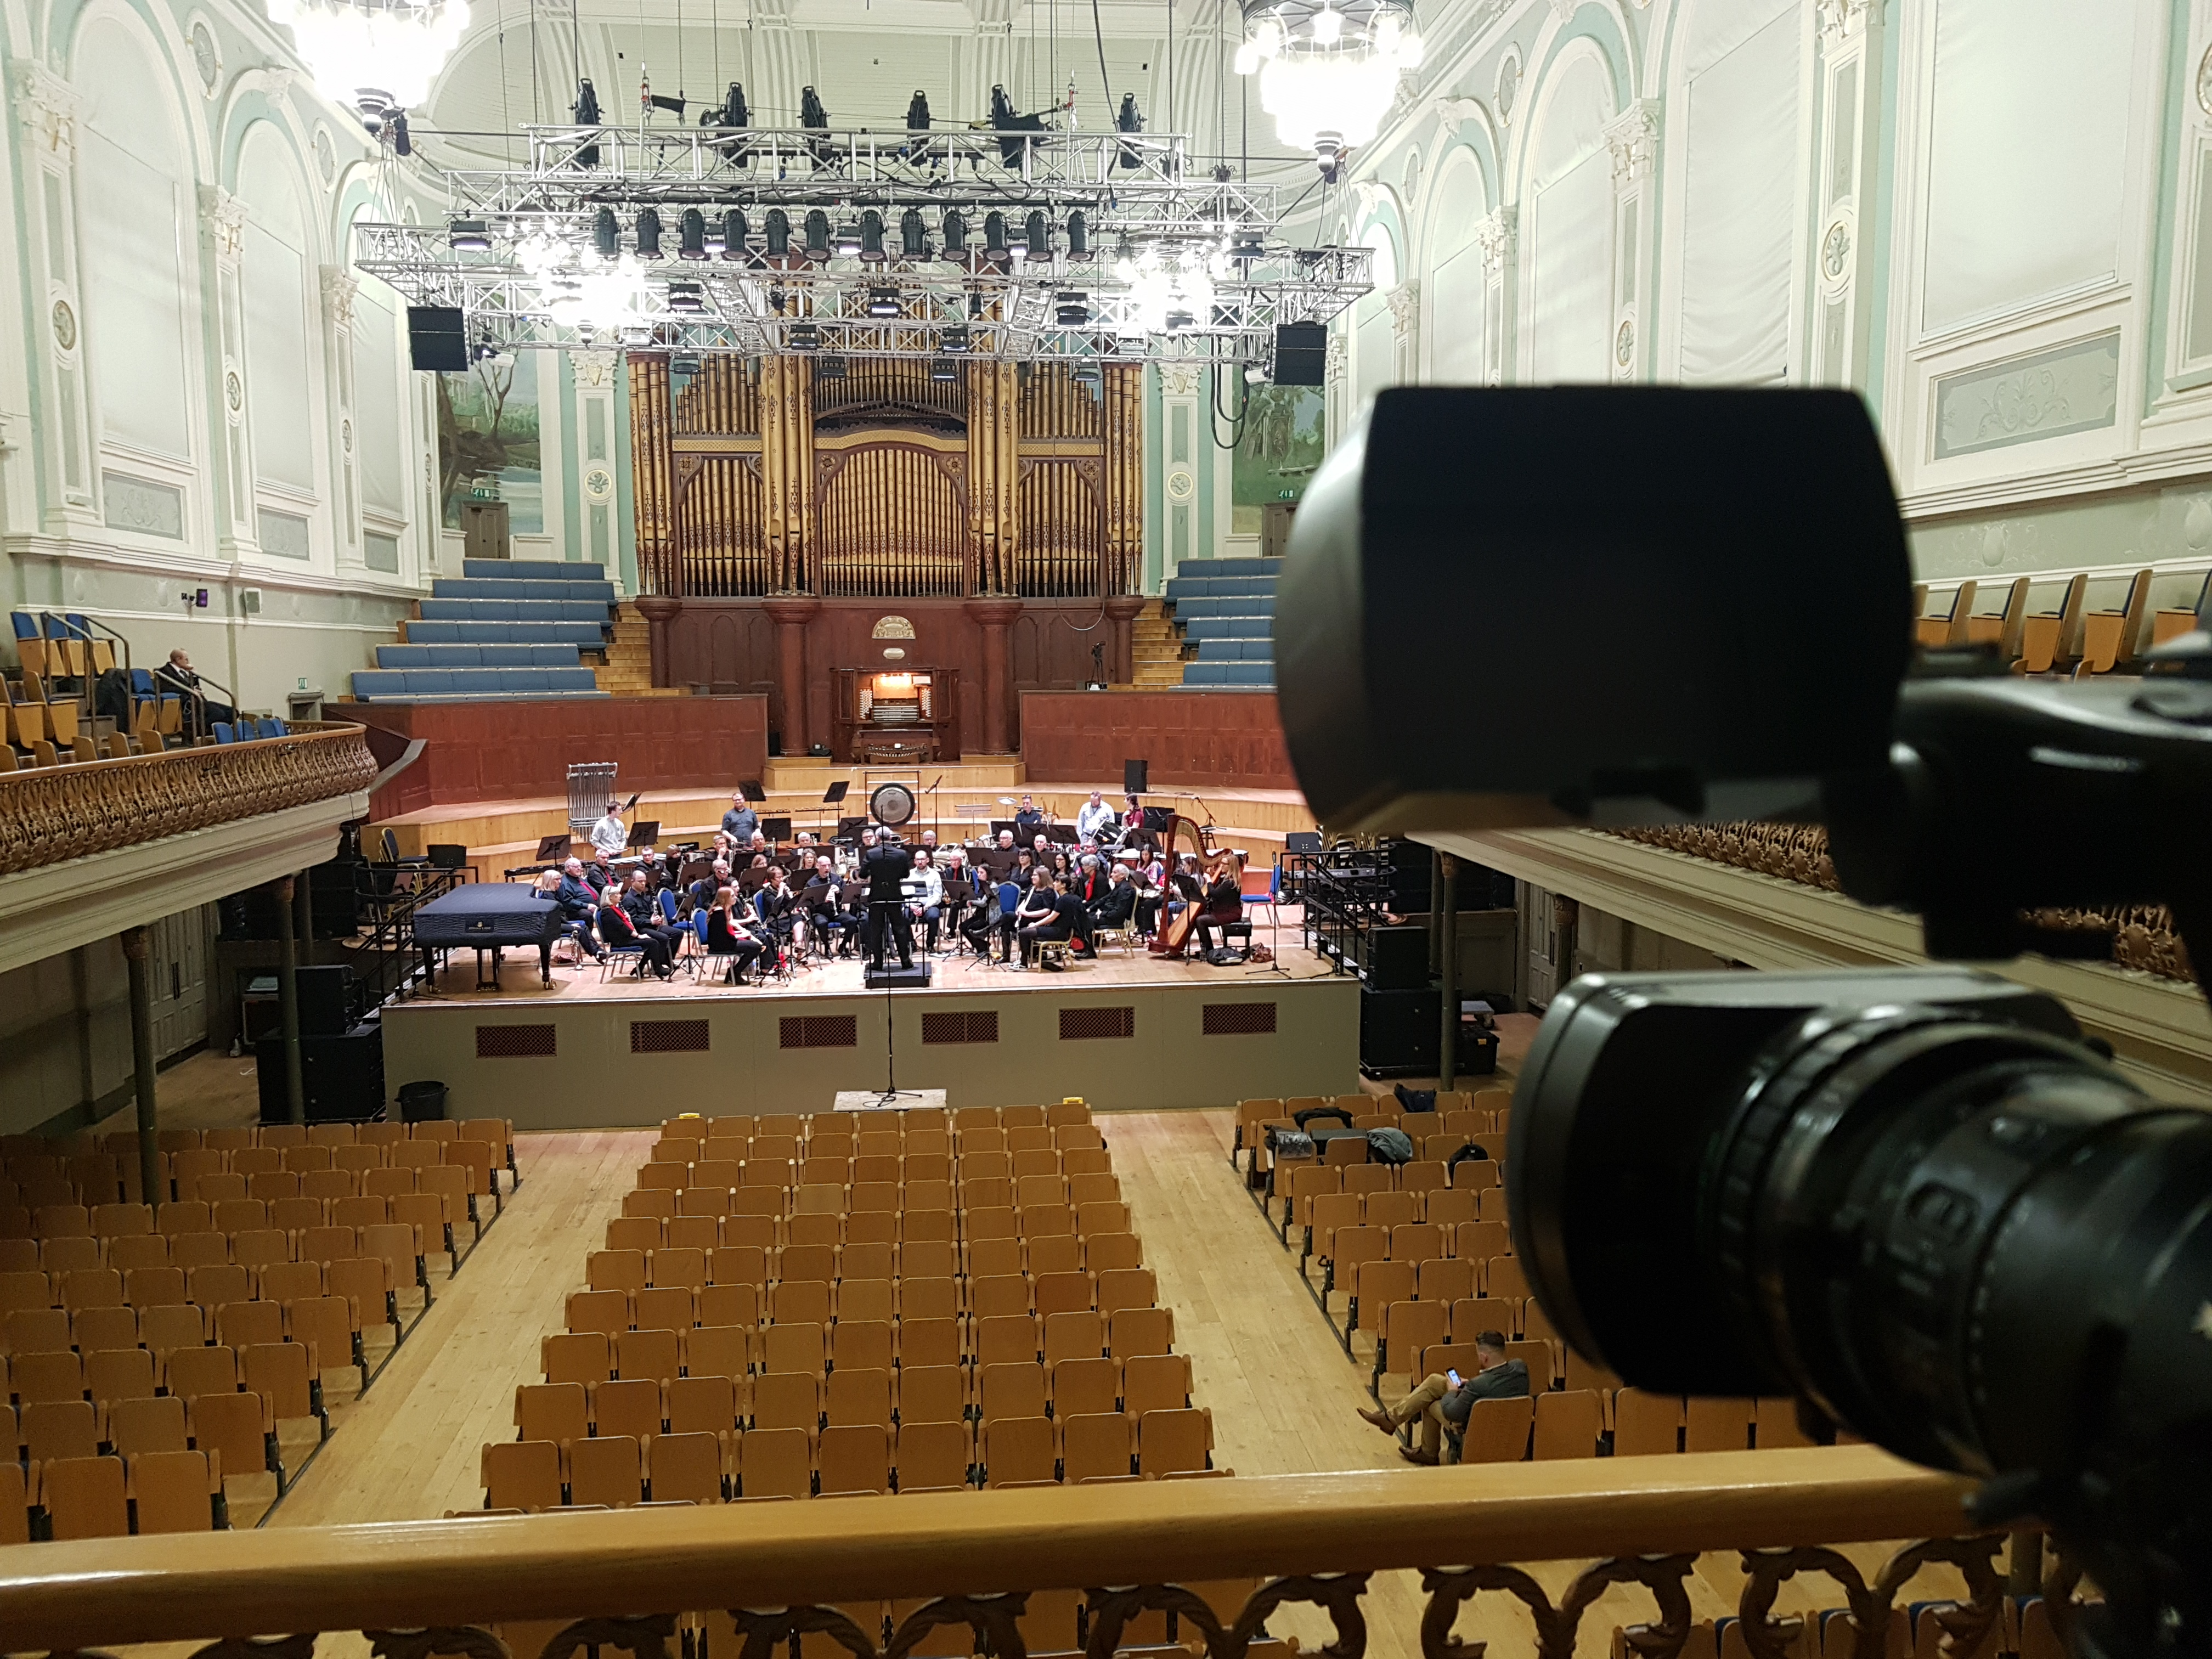 Ulster Hall Belfast Live Stream Camera Angle